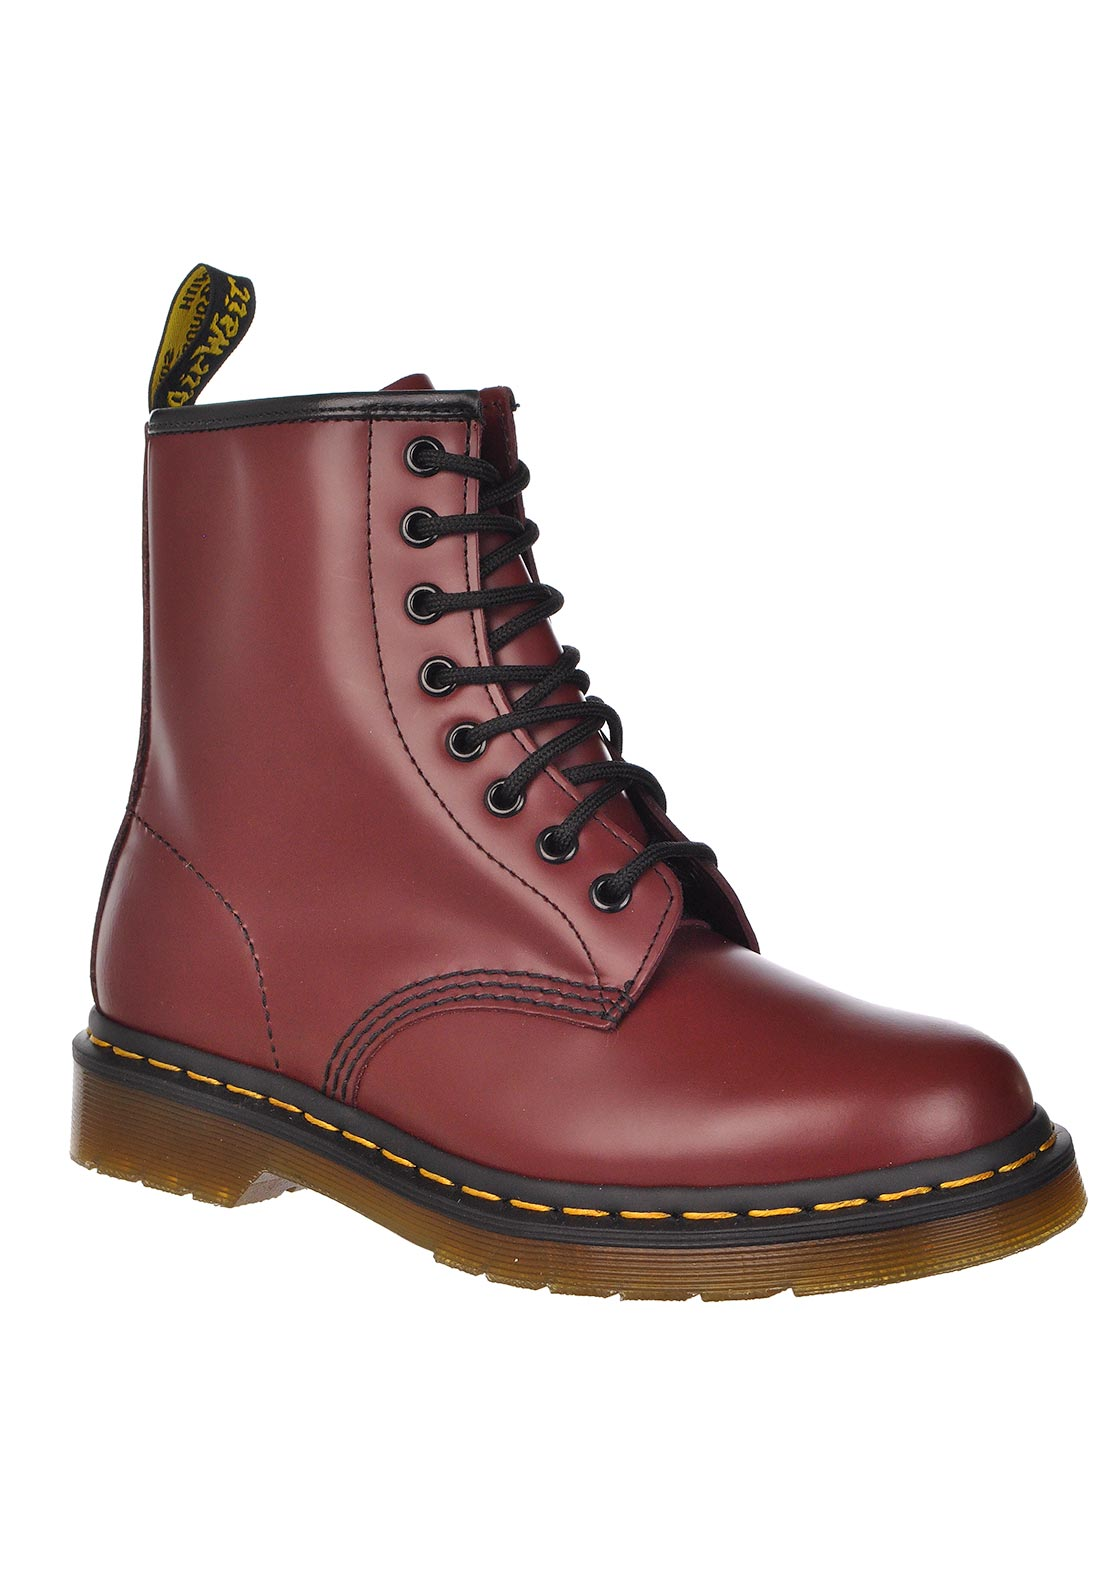 Dr. Martens AirWair Women's 1460 Leather Boots, Cherry Red